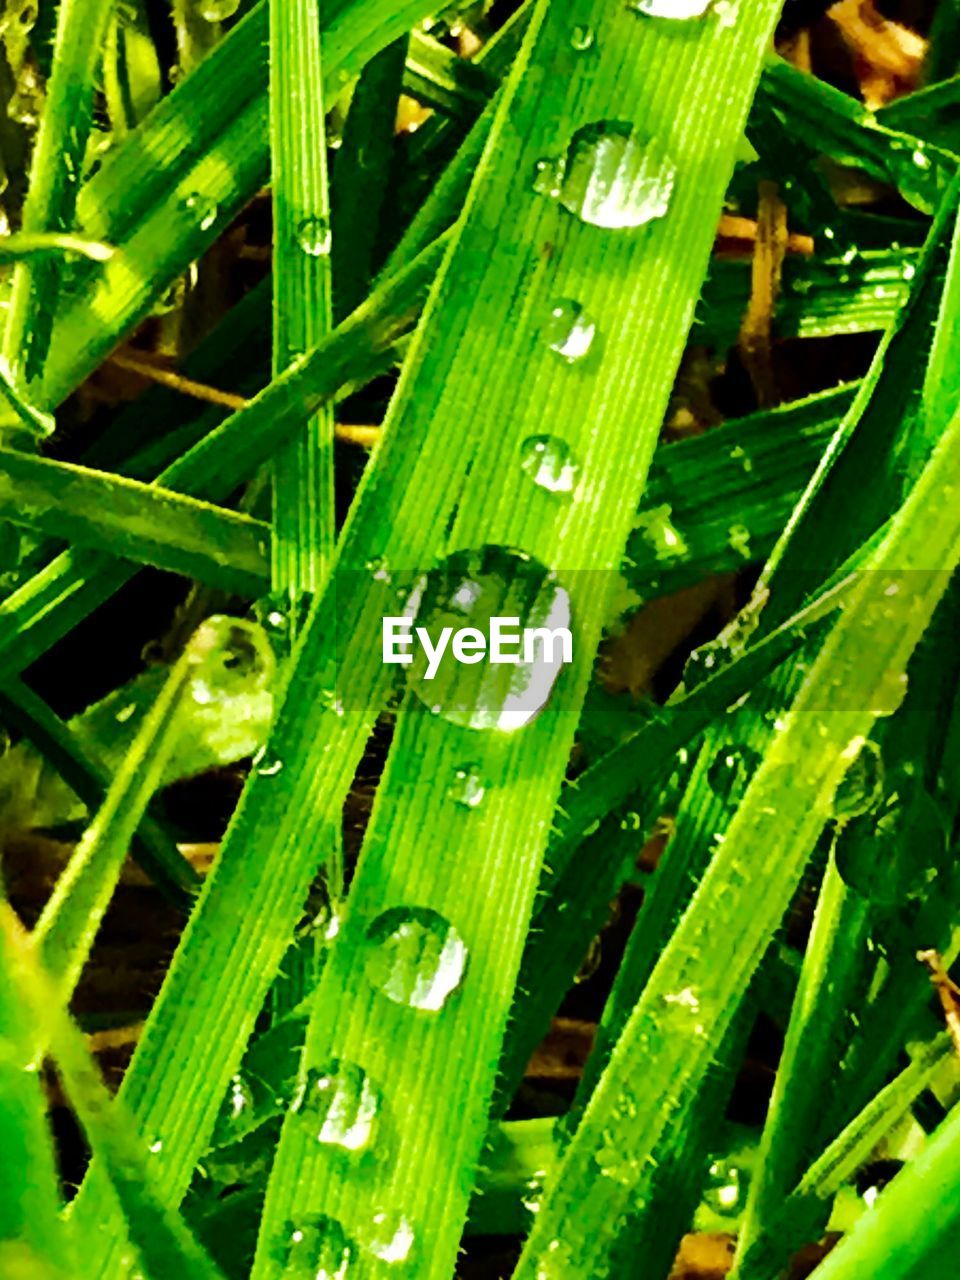 green color, growth, plant, water, drop, wet, grass, nature, leaf, close-up, plant part, blade of grass, freshness, beauty in nature, day, no people, full frame, dew, outdoors, rain, raindrop, rainy season, purity